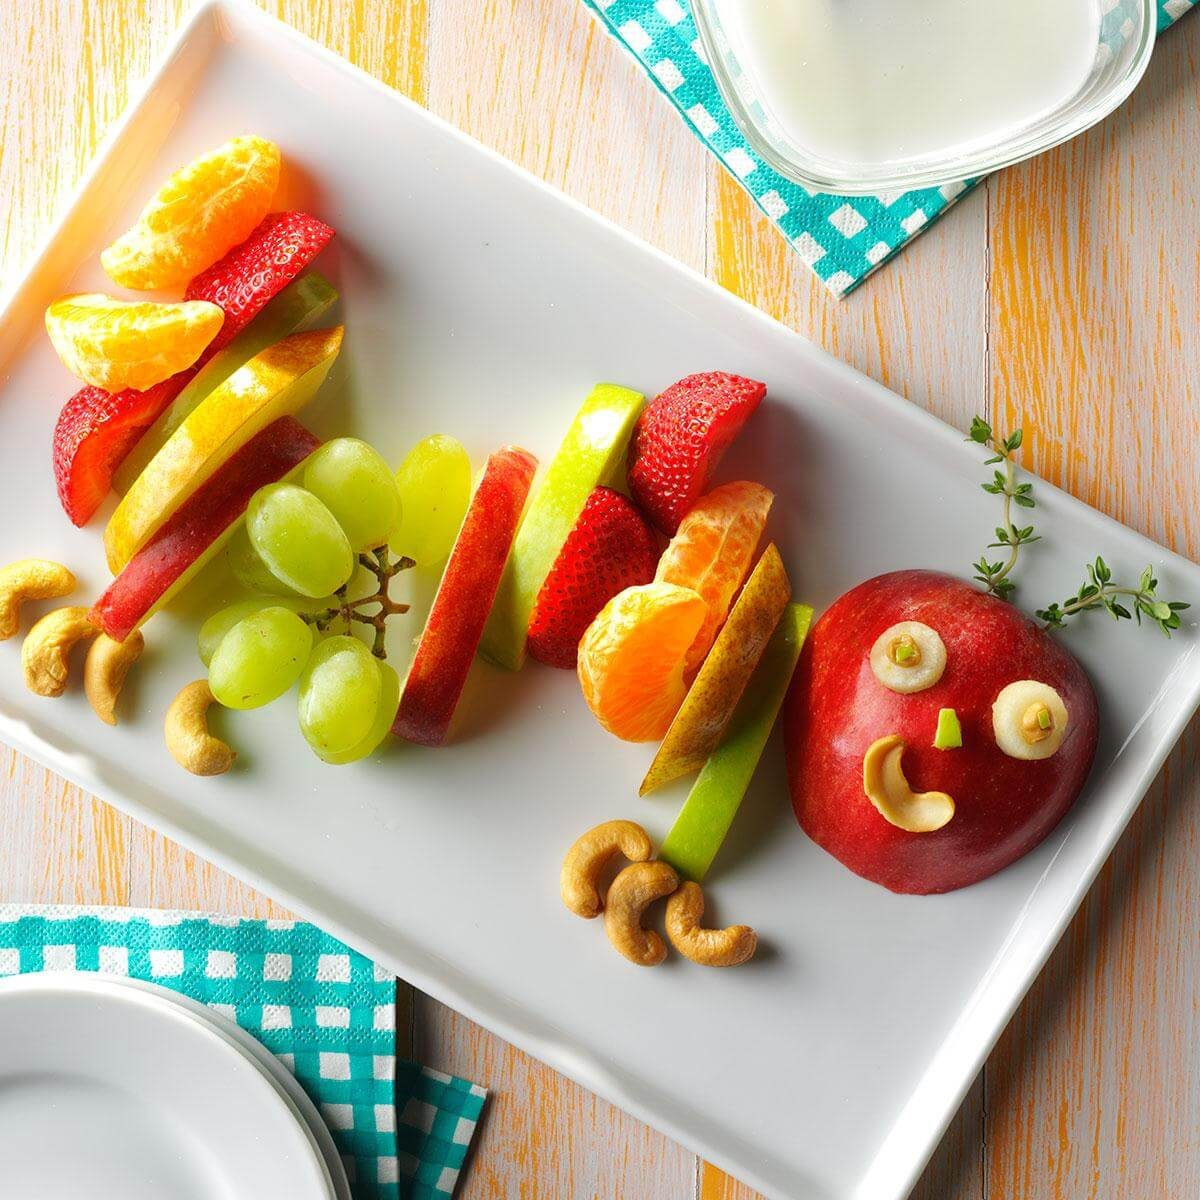 20 Fun, Healthy Snacks for Kids